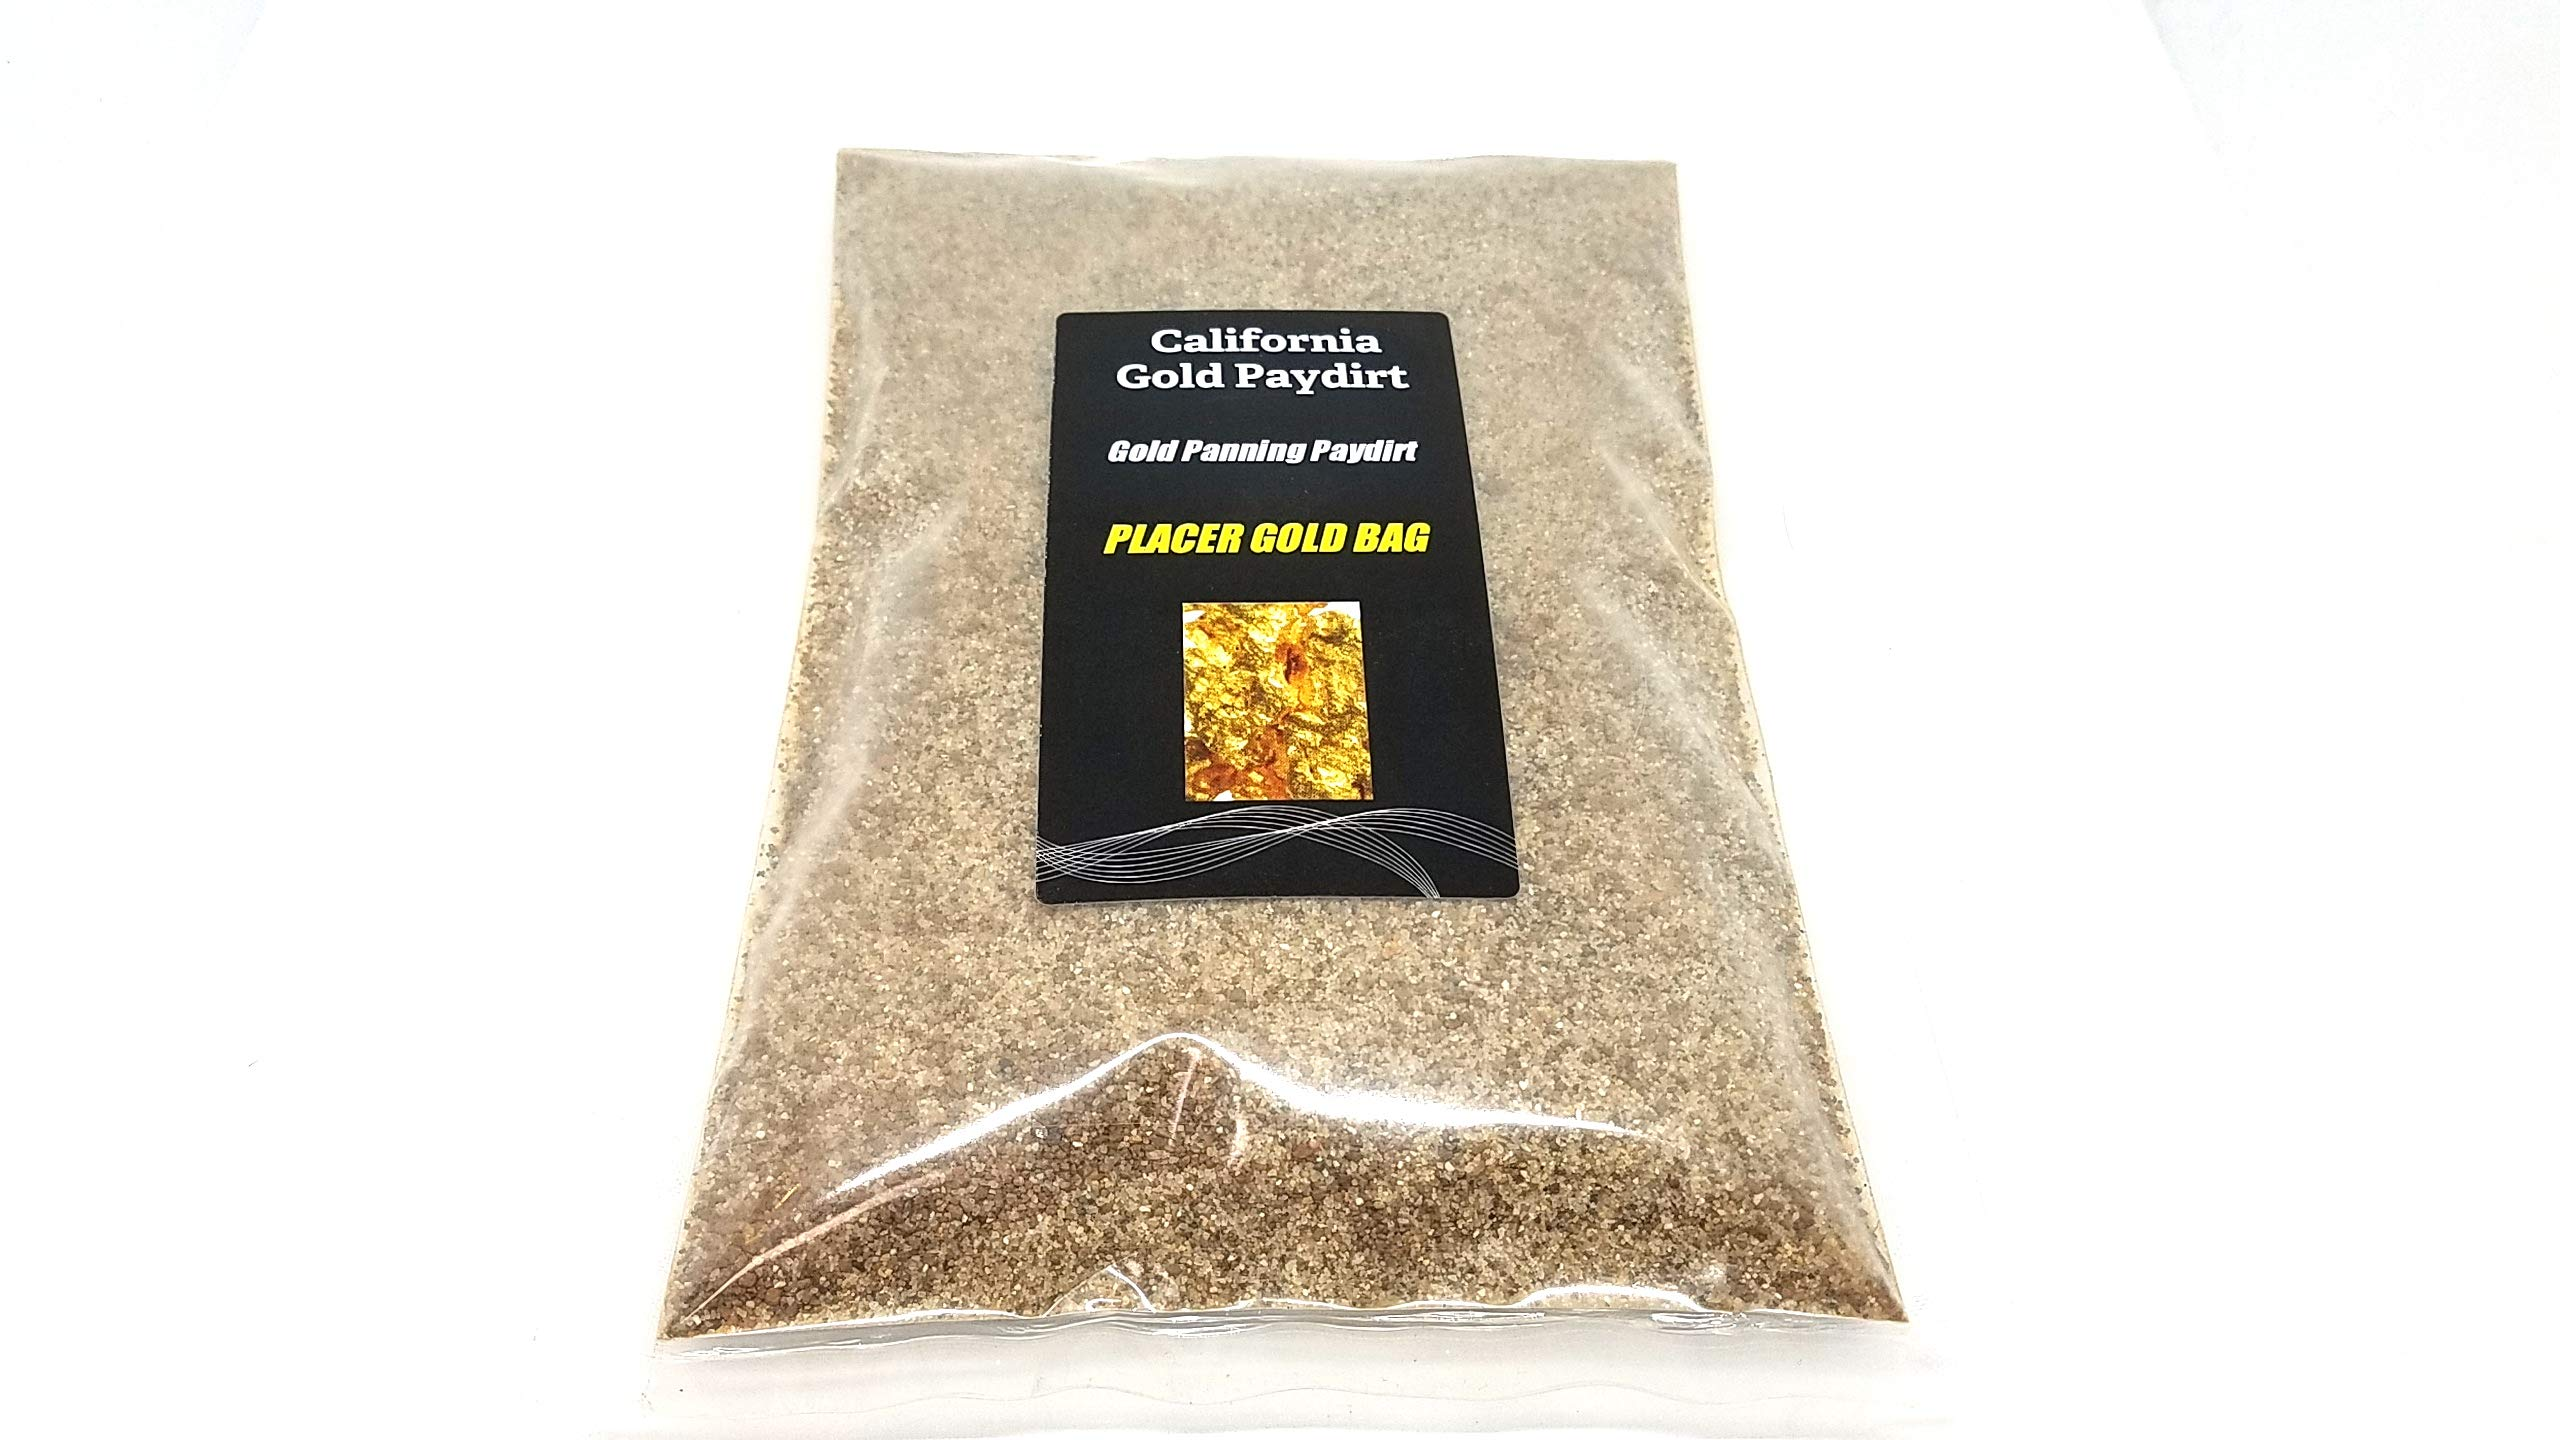 California Gold Paydirt Placer Gold Pay Dirt Bag Panning Concentrates by California Gold Paydirt